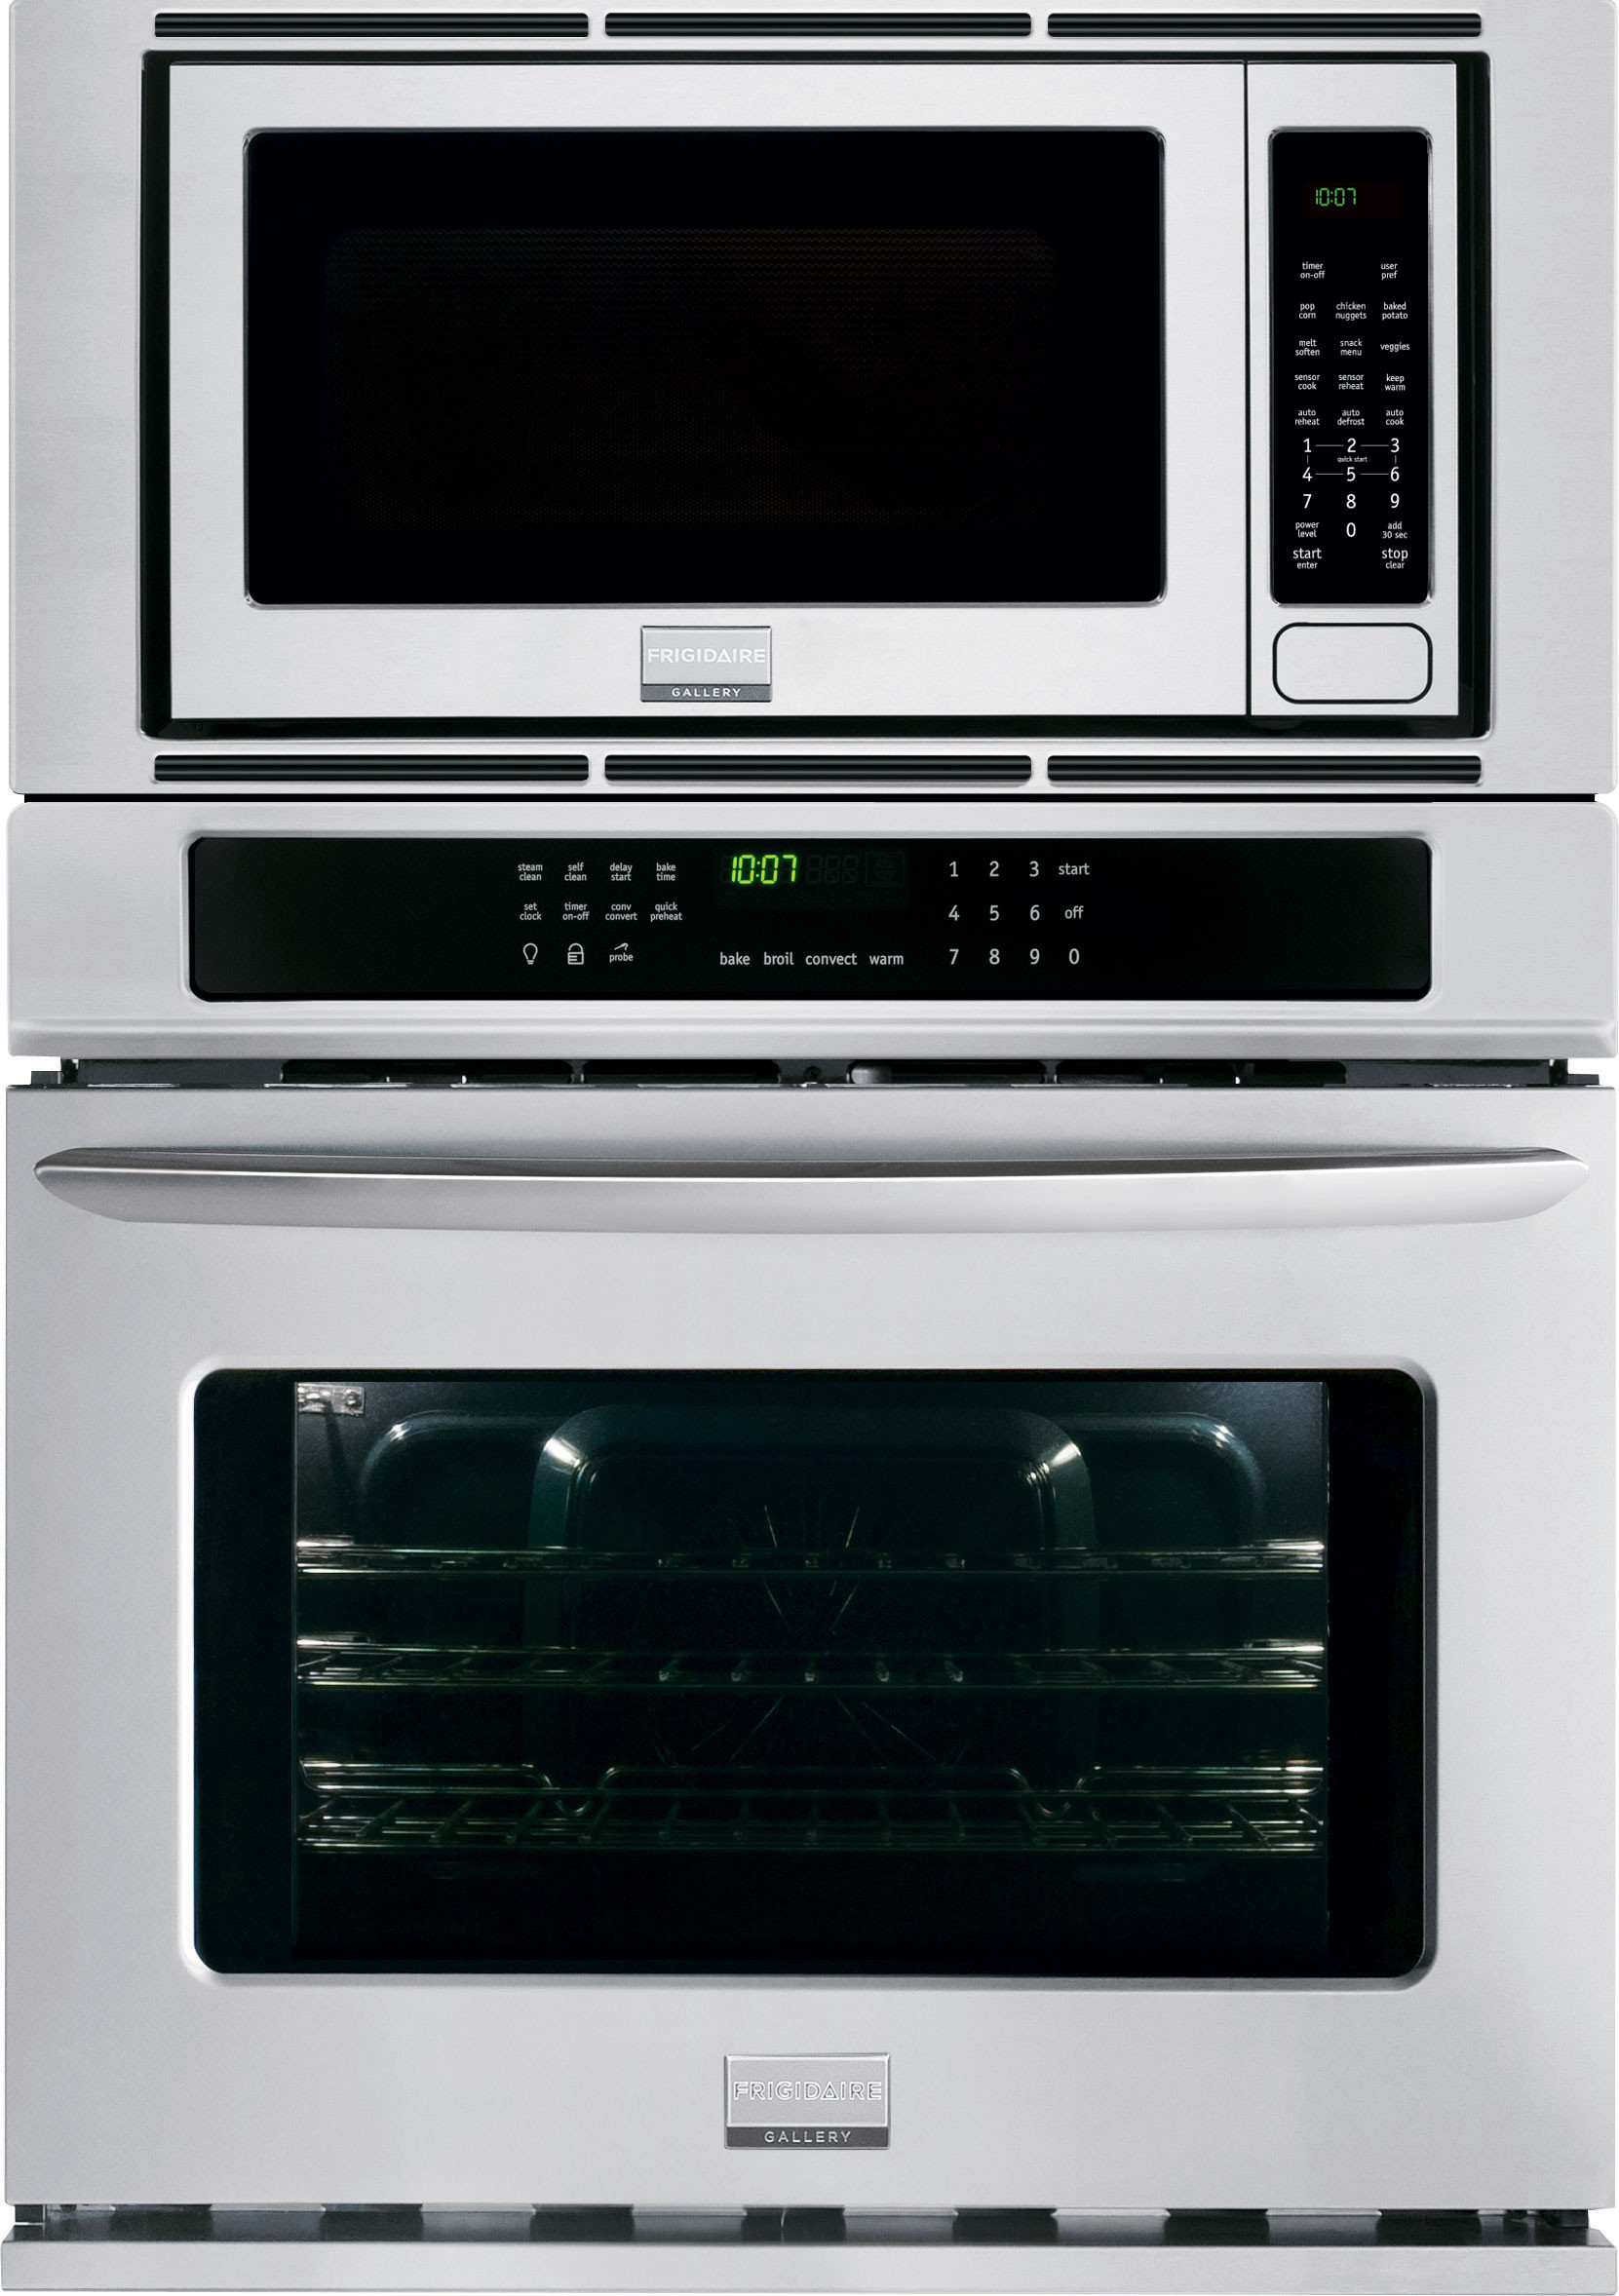 Frigidaire FGMC3065PF 30 Inch Combination Wall Oven with 4.6 cu. ft. True  Convection Oven, 2.0 cu. ft. Microwave, Steam Clean, Quick Preheat, ...